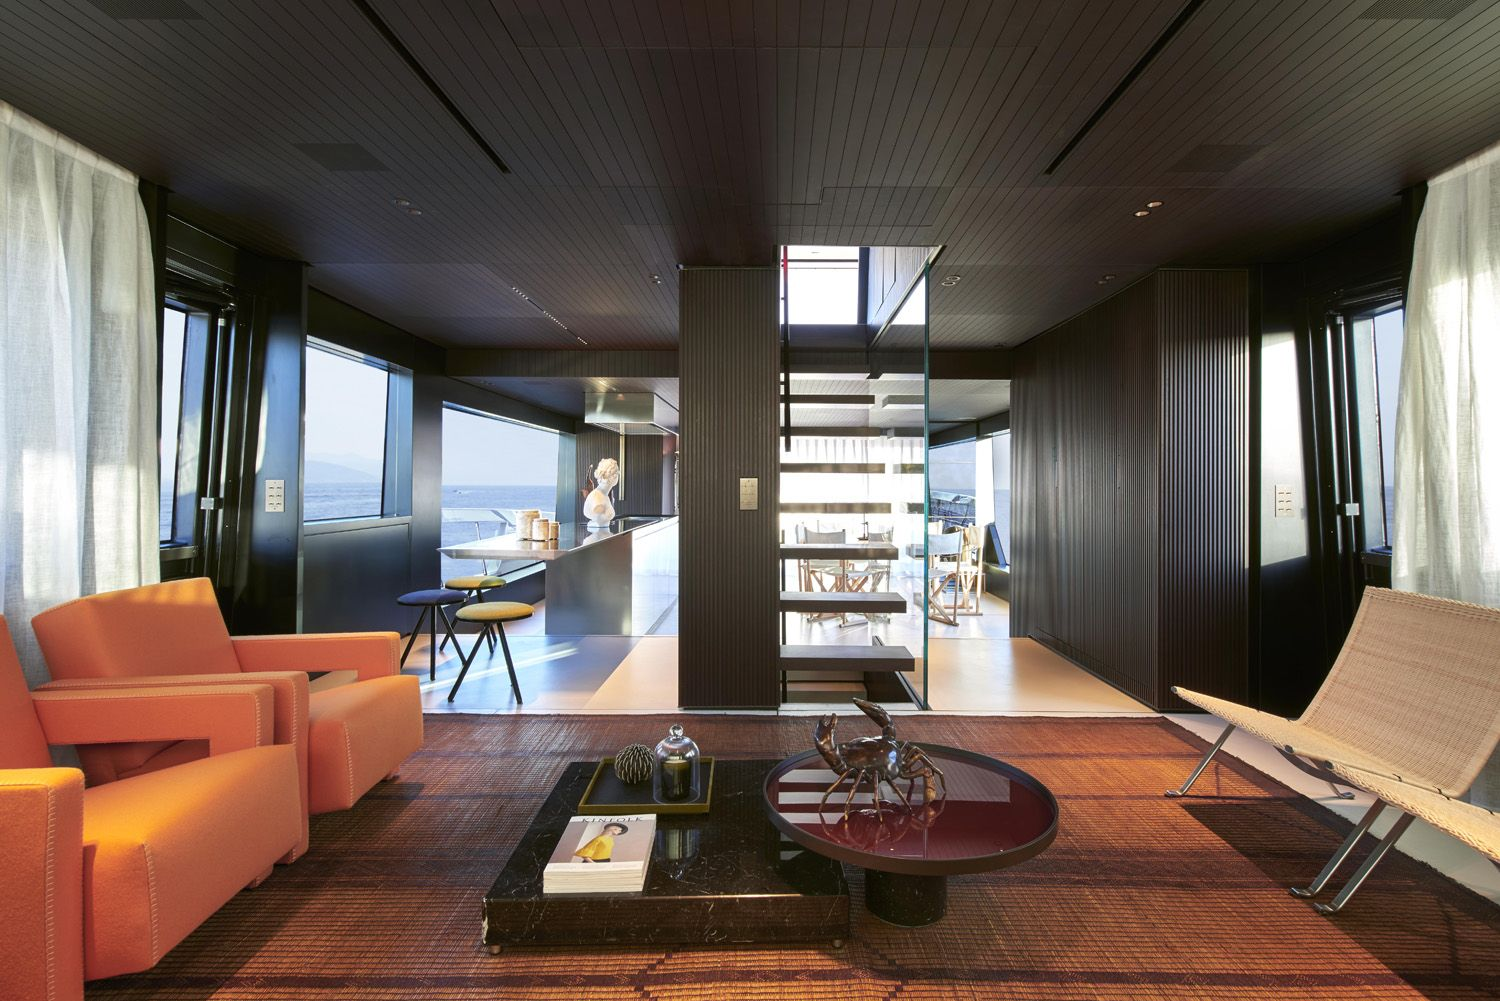 The living area of the Sanlorenzo SX88 yacht designed by Piero Lissoni